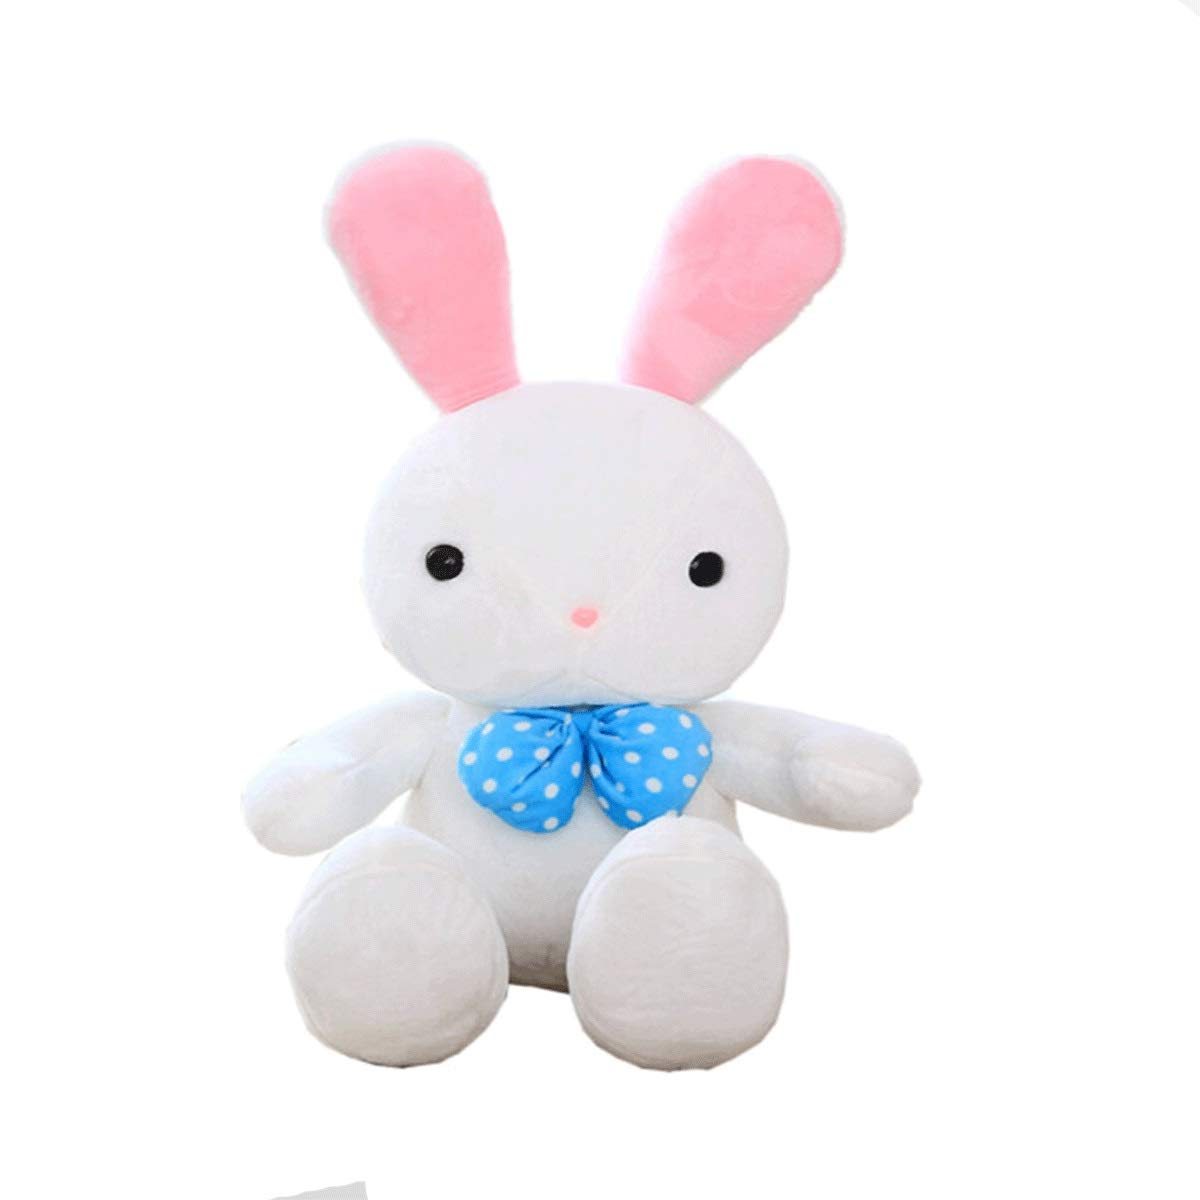 White 60cm White 60cm Xionghaizi Plush Toy Rabbit, Rogue Rabbit Figurine, Pillow, Birthday Present, White Pink, Best Gift Latest Models (color   White, Size   60cm)